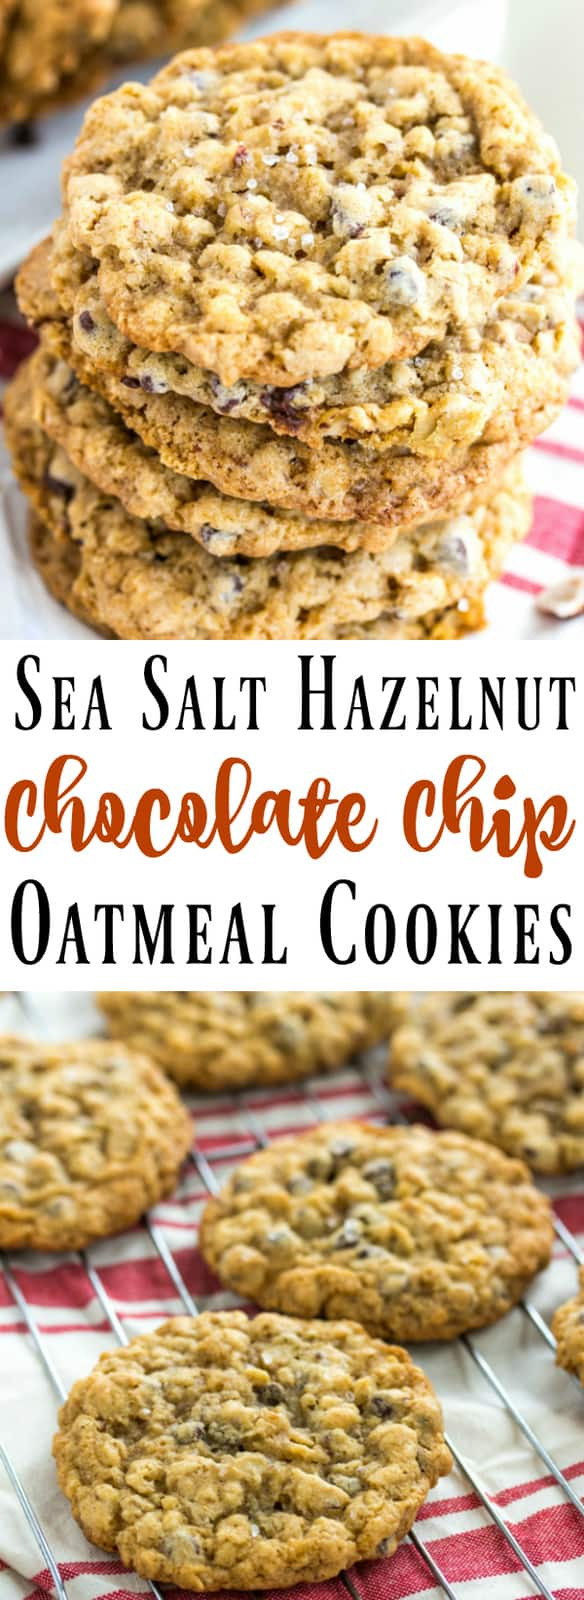 Sea Salt Hazelnut Chocolate Chip Oatmeal Cookies